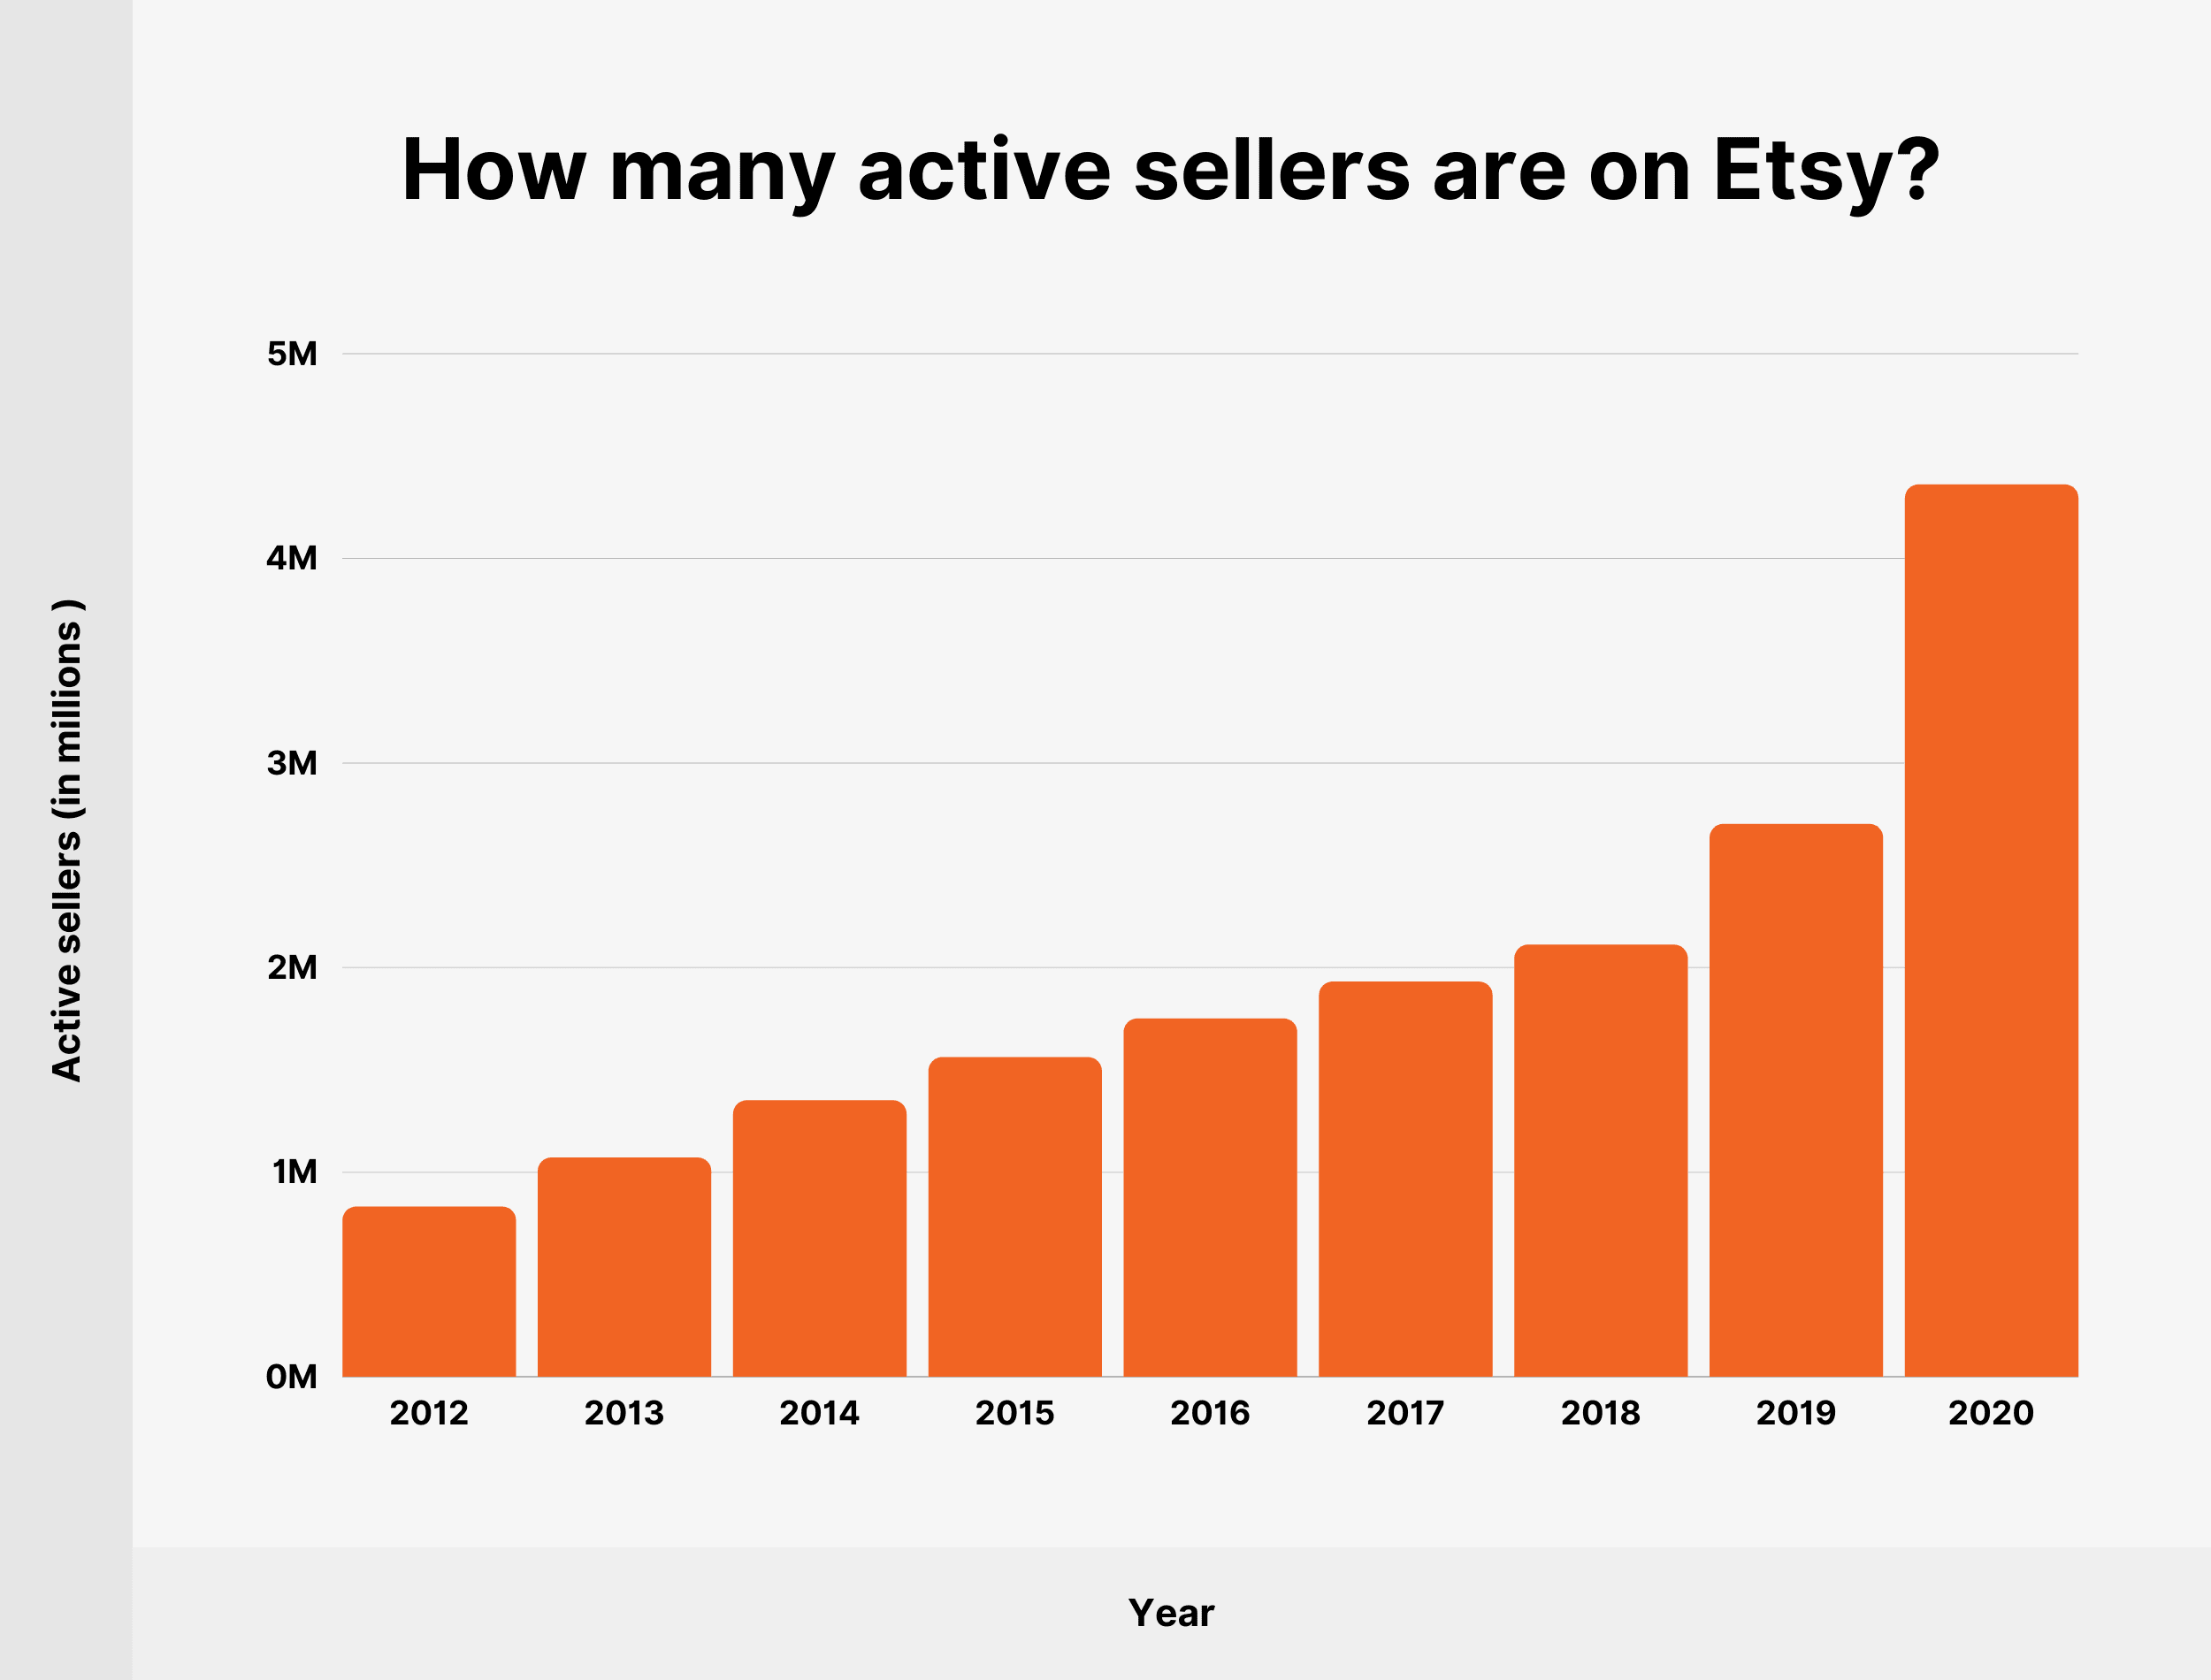 How many active sellers are on Etsy?